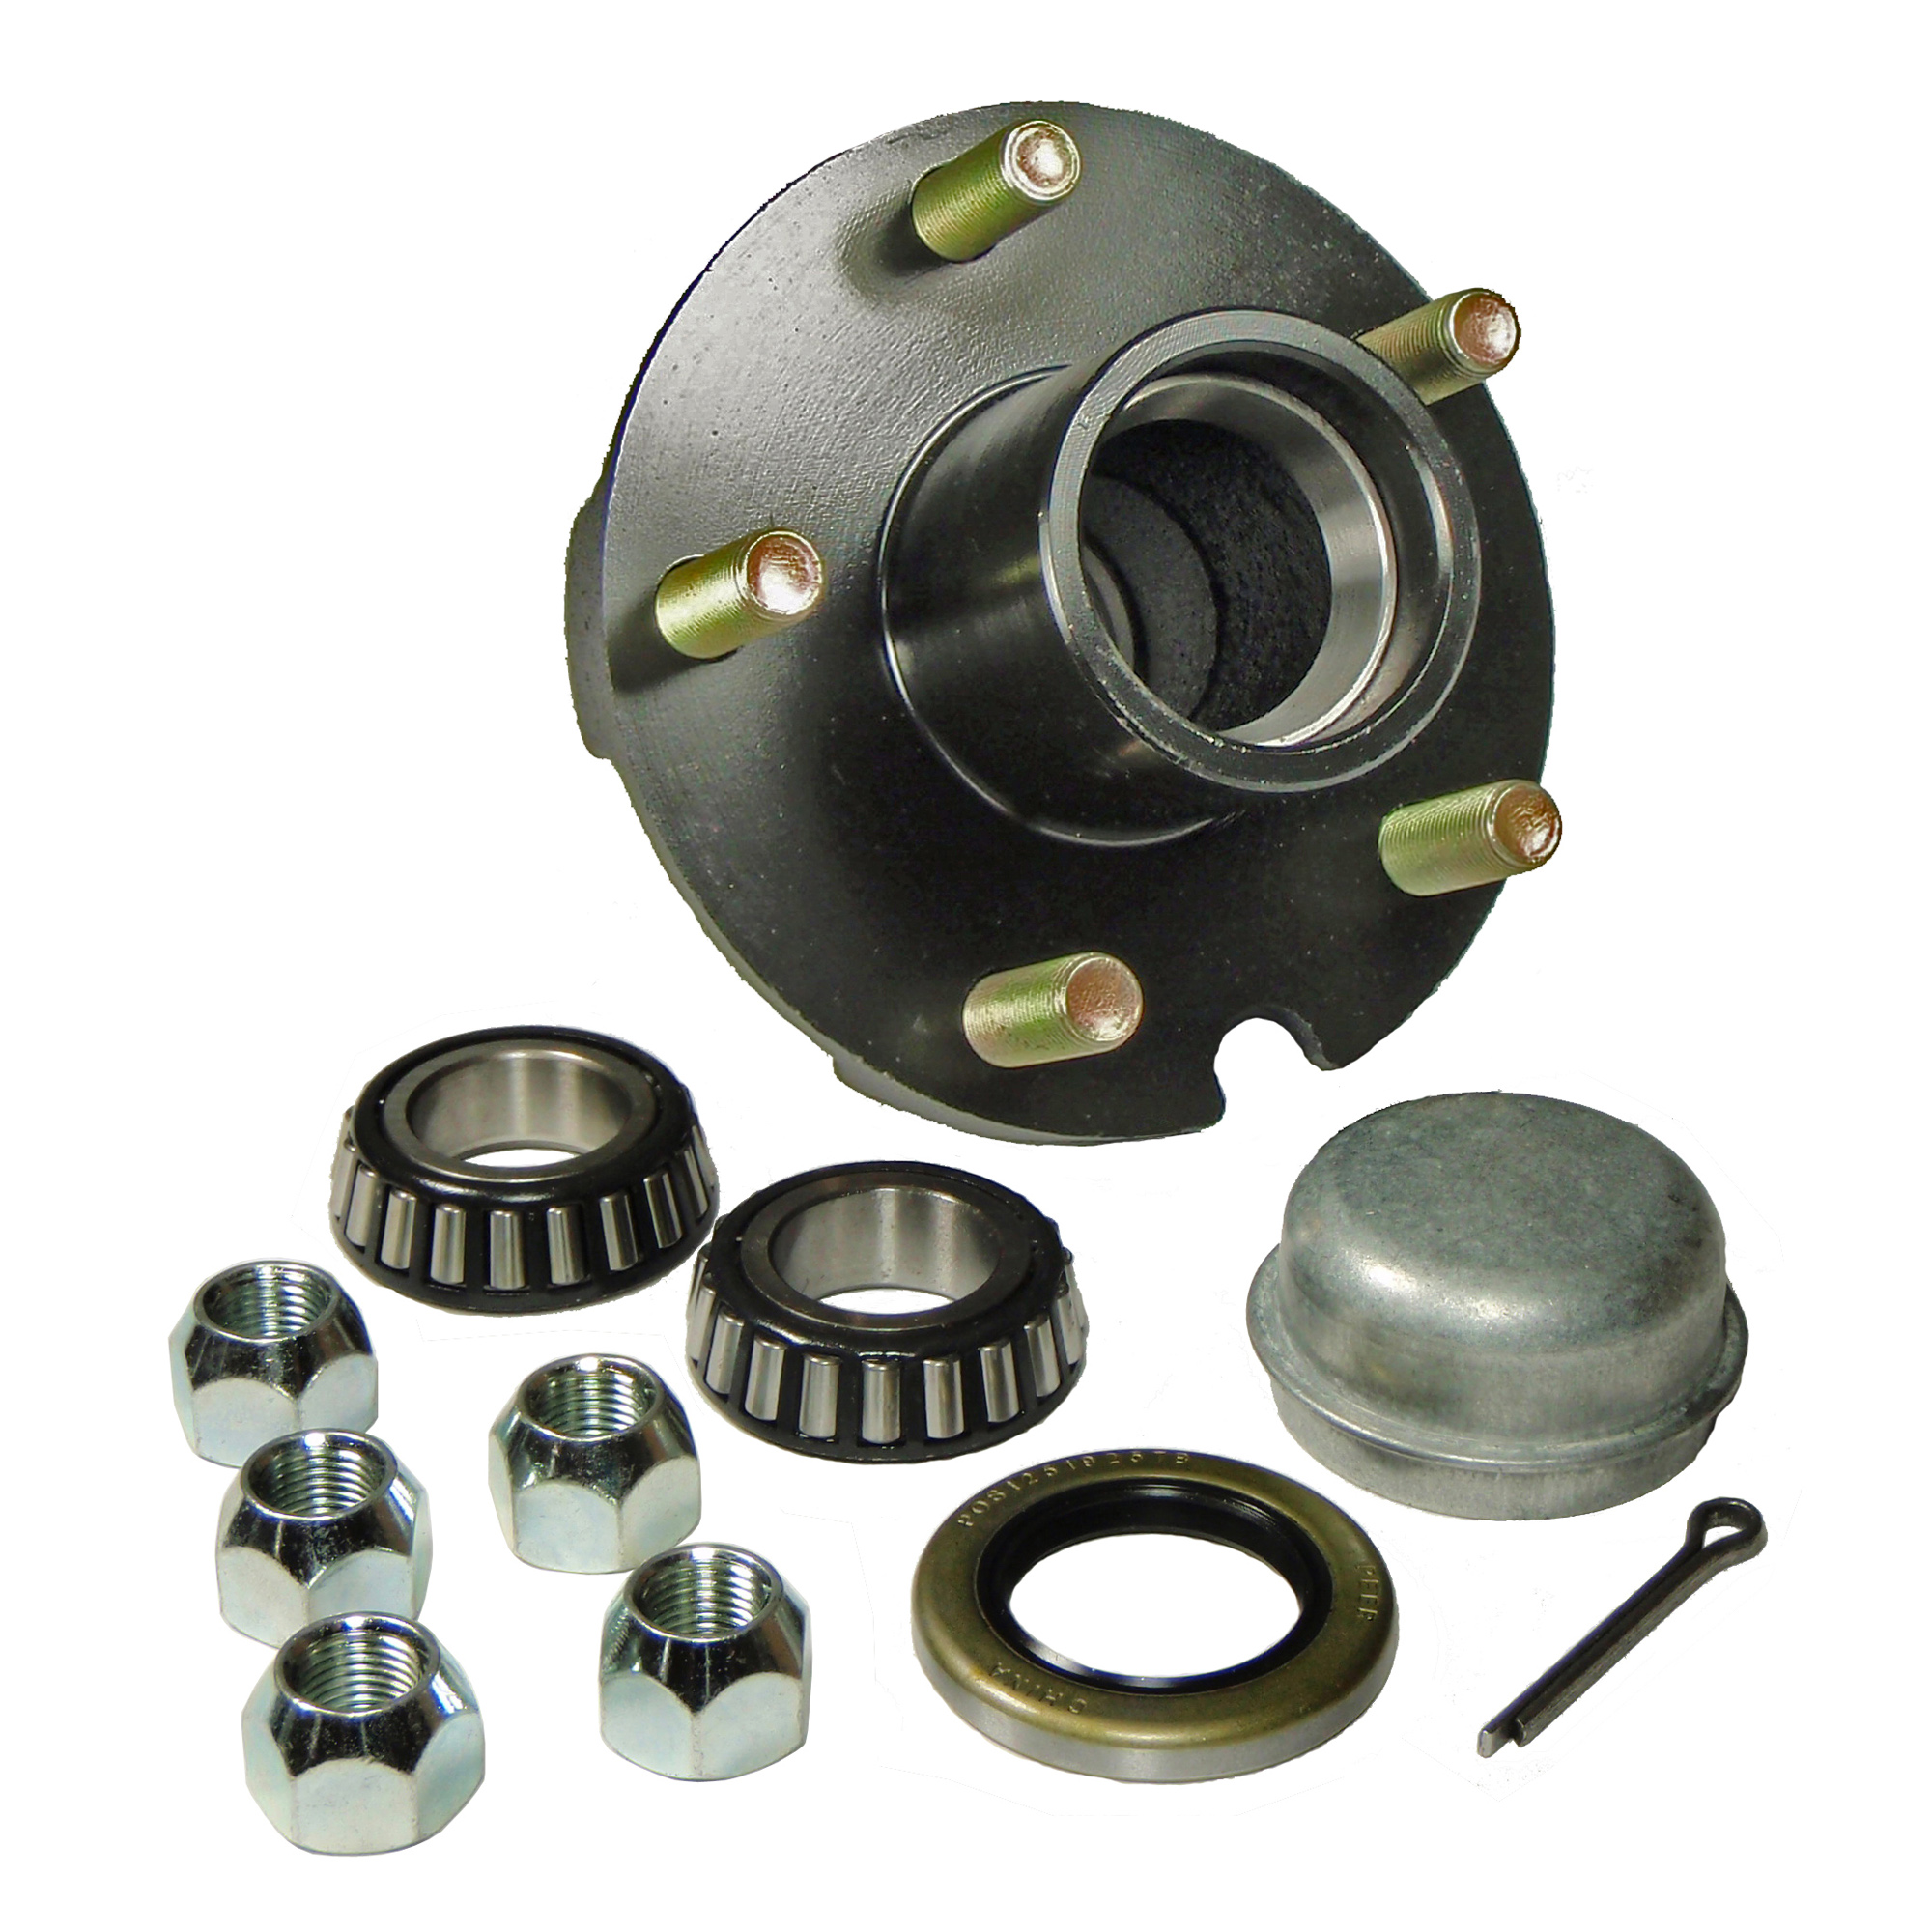 Trailer Hub Kit - 5 Bolt on 4-1/2 Inch Circle - 1 inch I.D. Bearings